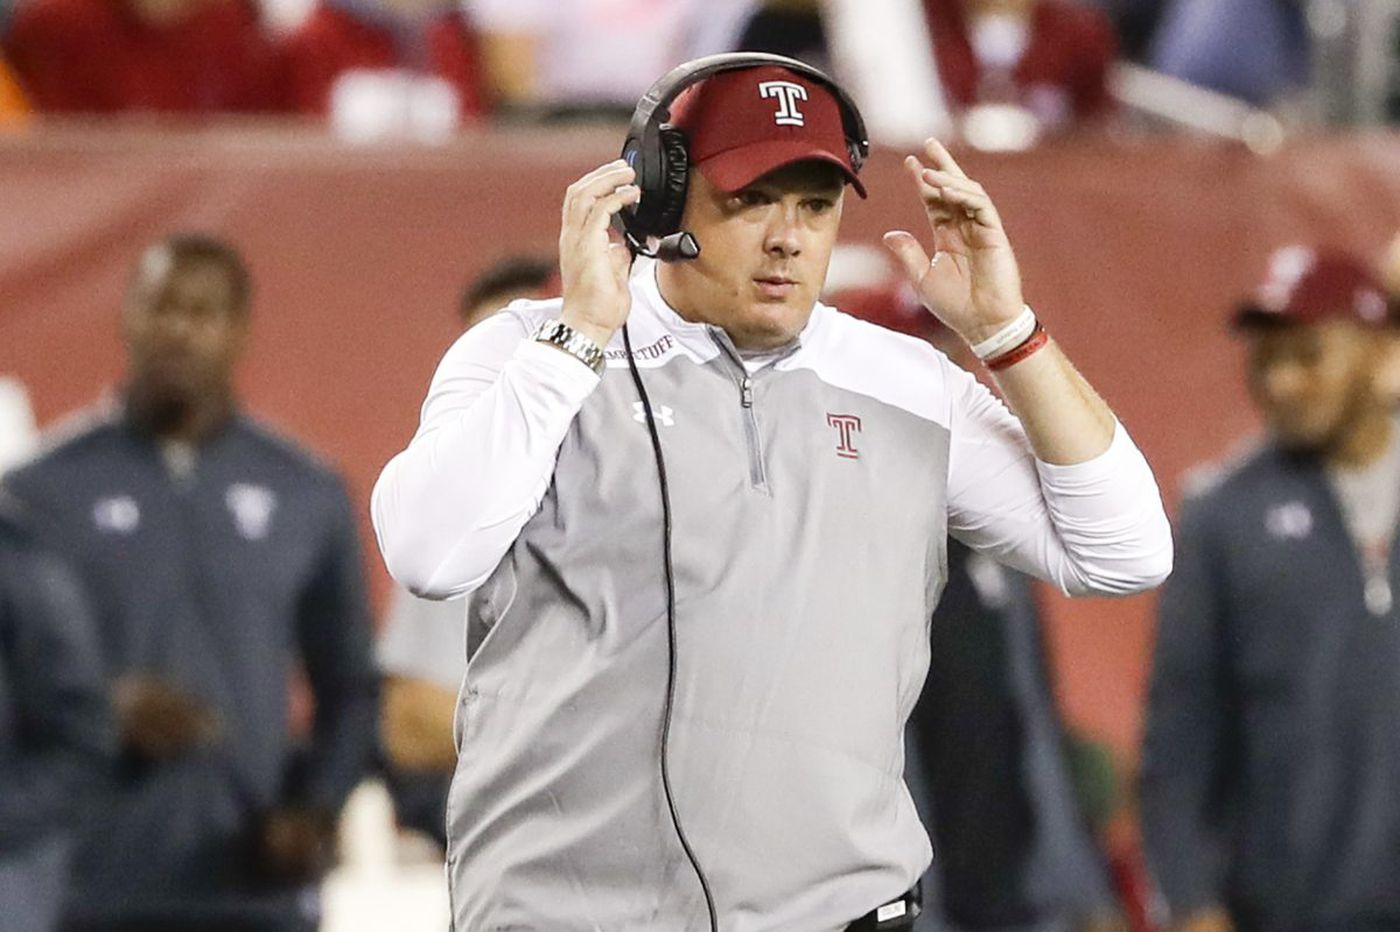 Temple football coach Geoff Collins 'excited' for quarterback Frank Nutile to start again